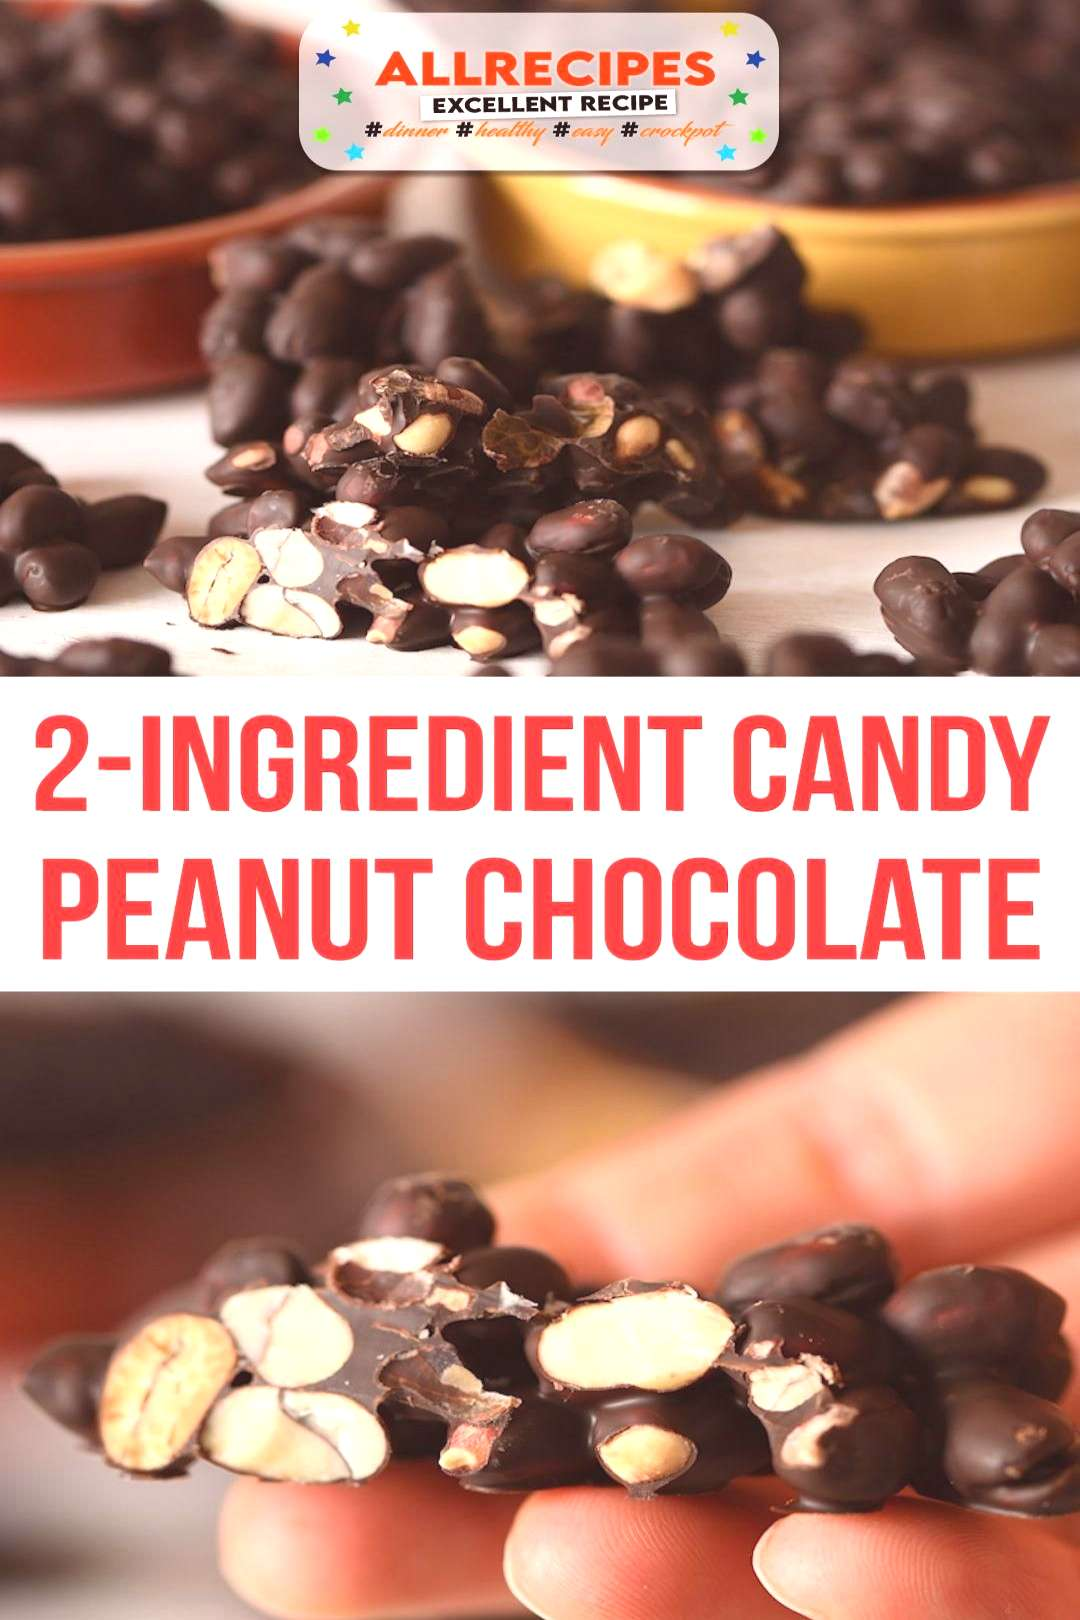 2-ingredient Peanut Chocolate Candy - - 2 Ingredient Peanut Chocolate candy can be made in a few mi